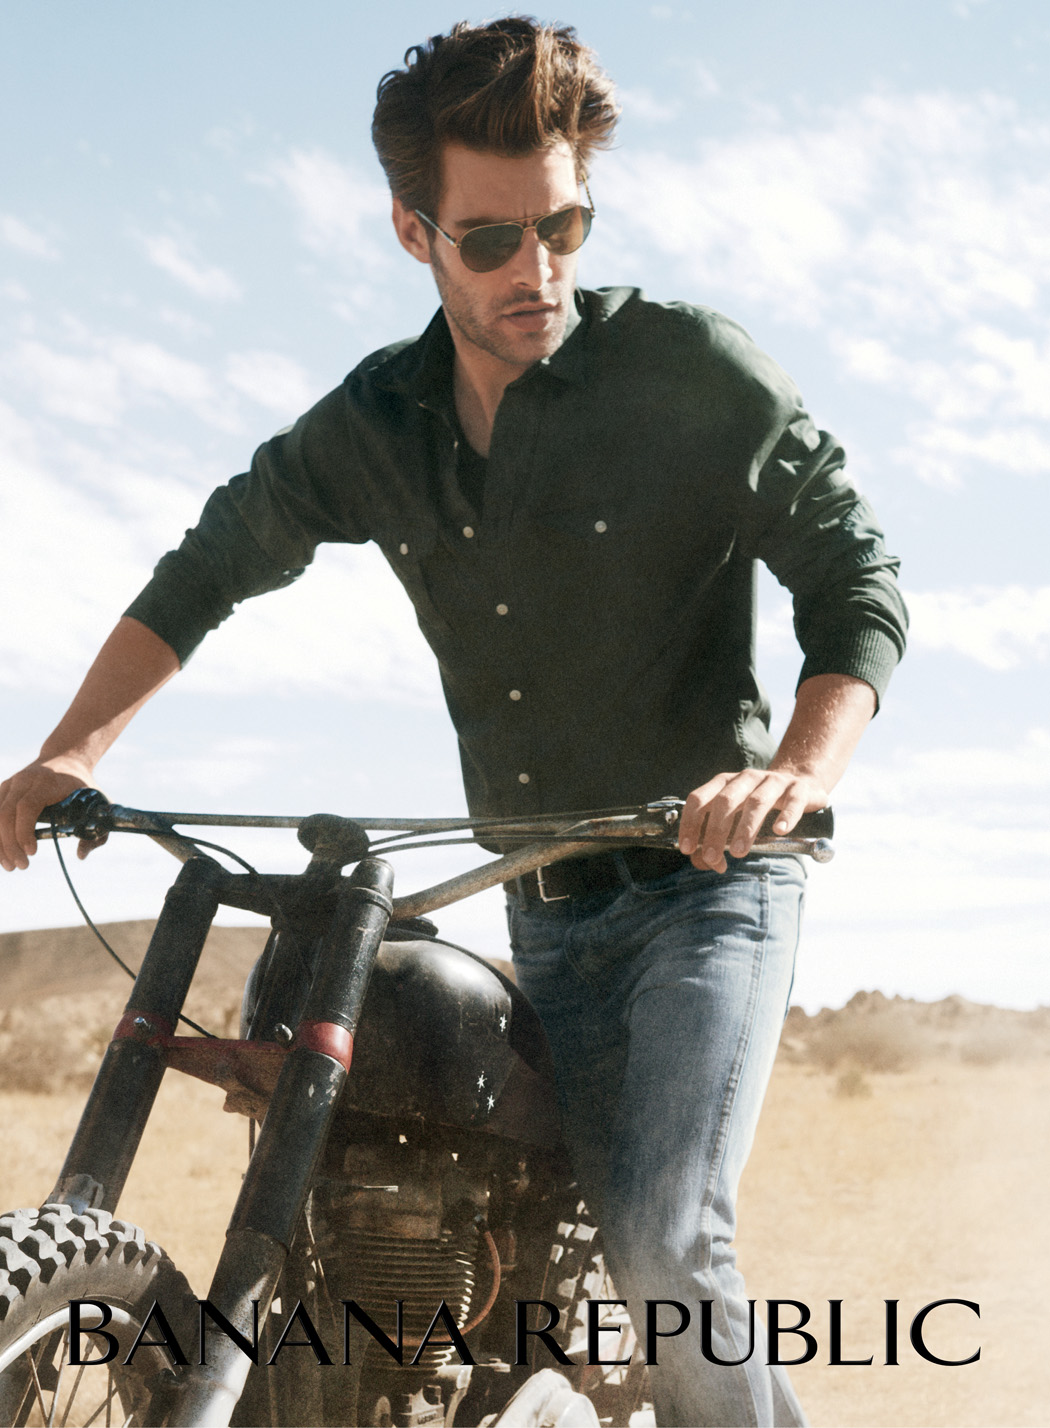 banana-republic-spring-2015-ad-campaign-the-impression-09